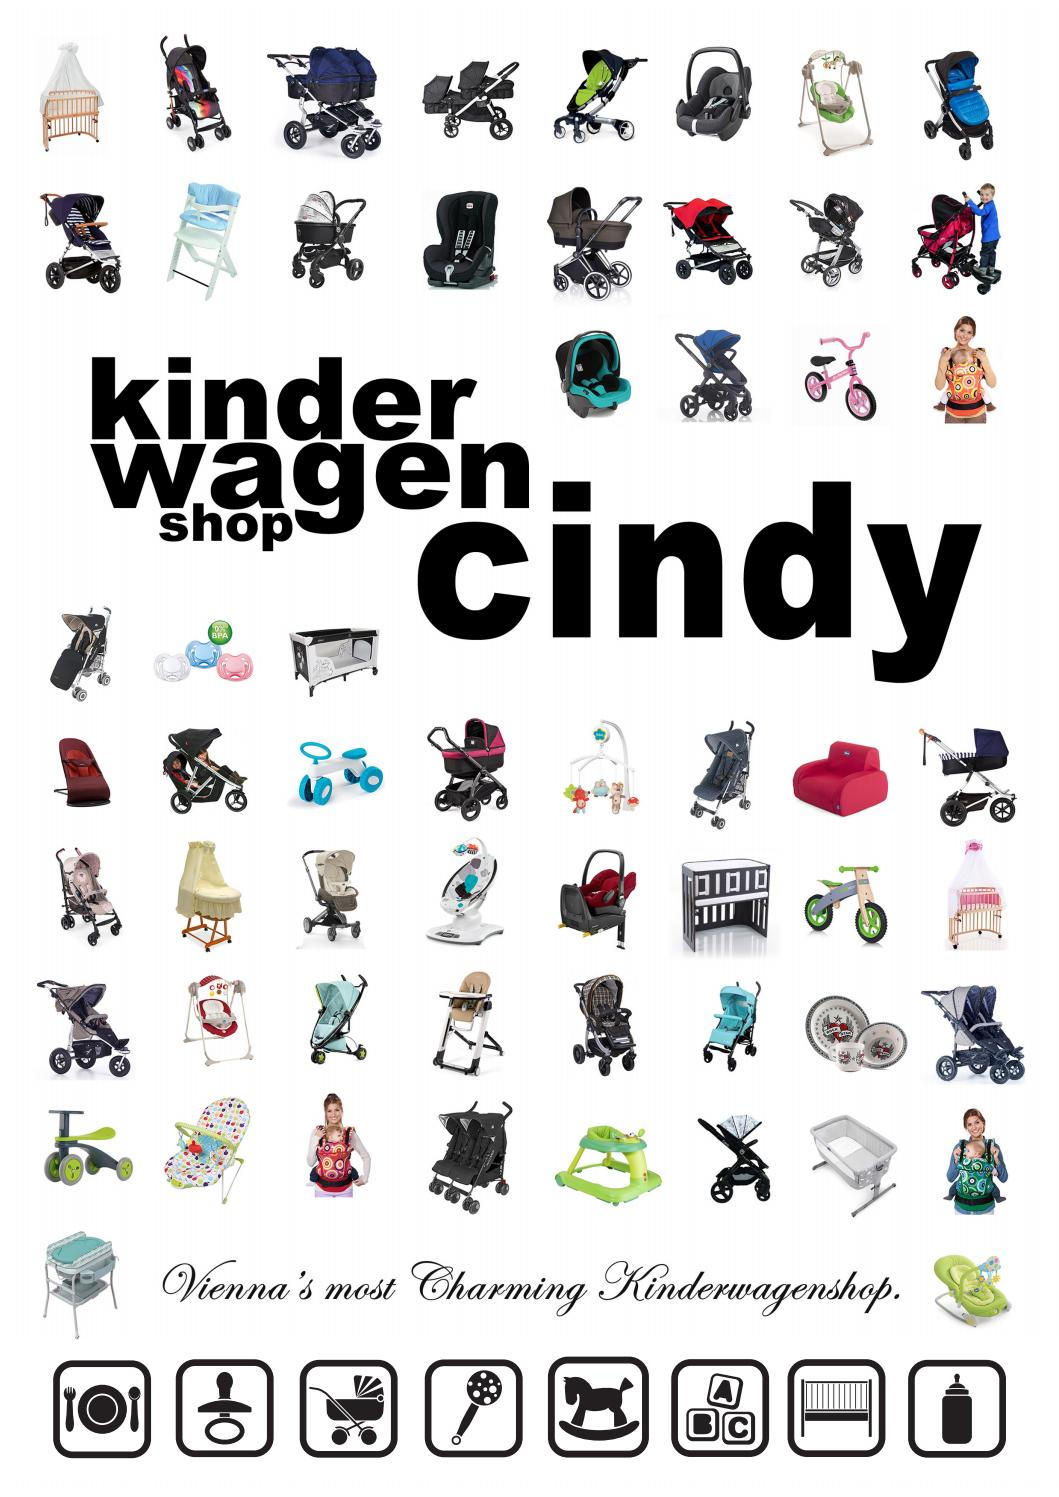 Doppel Kinderwagen Urban Jungle Kinderwagenshop Cindy 2017 By Crf Issuu